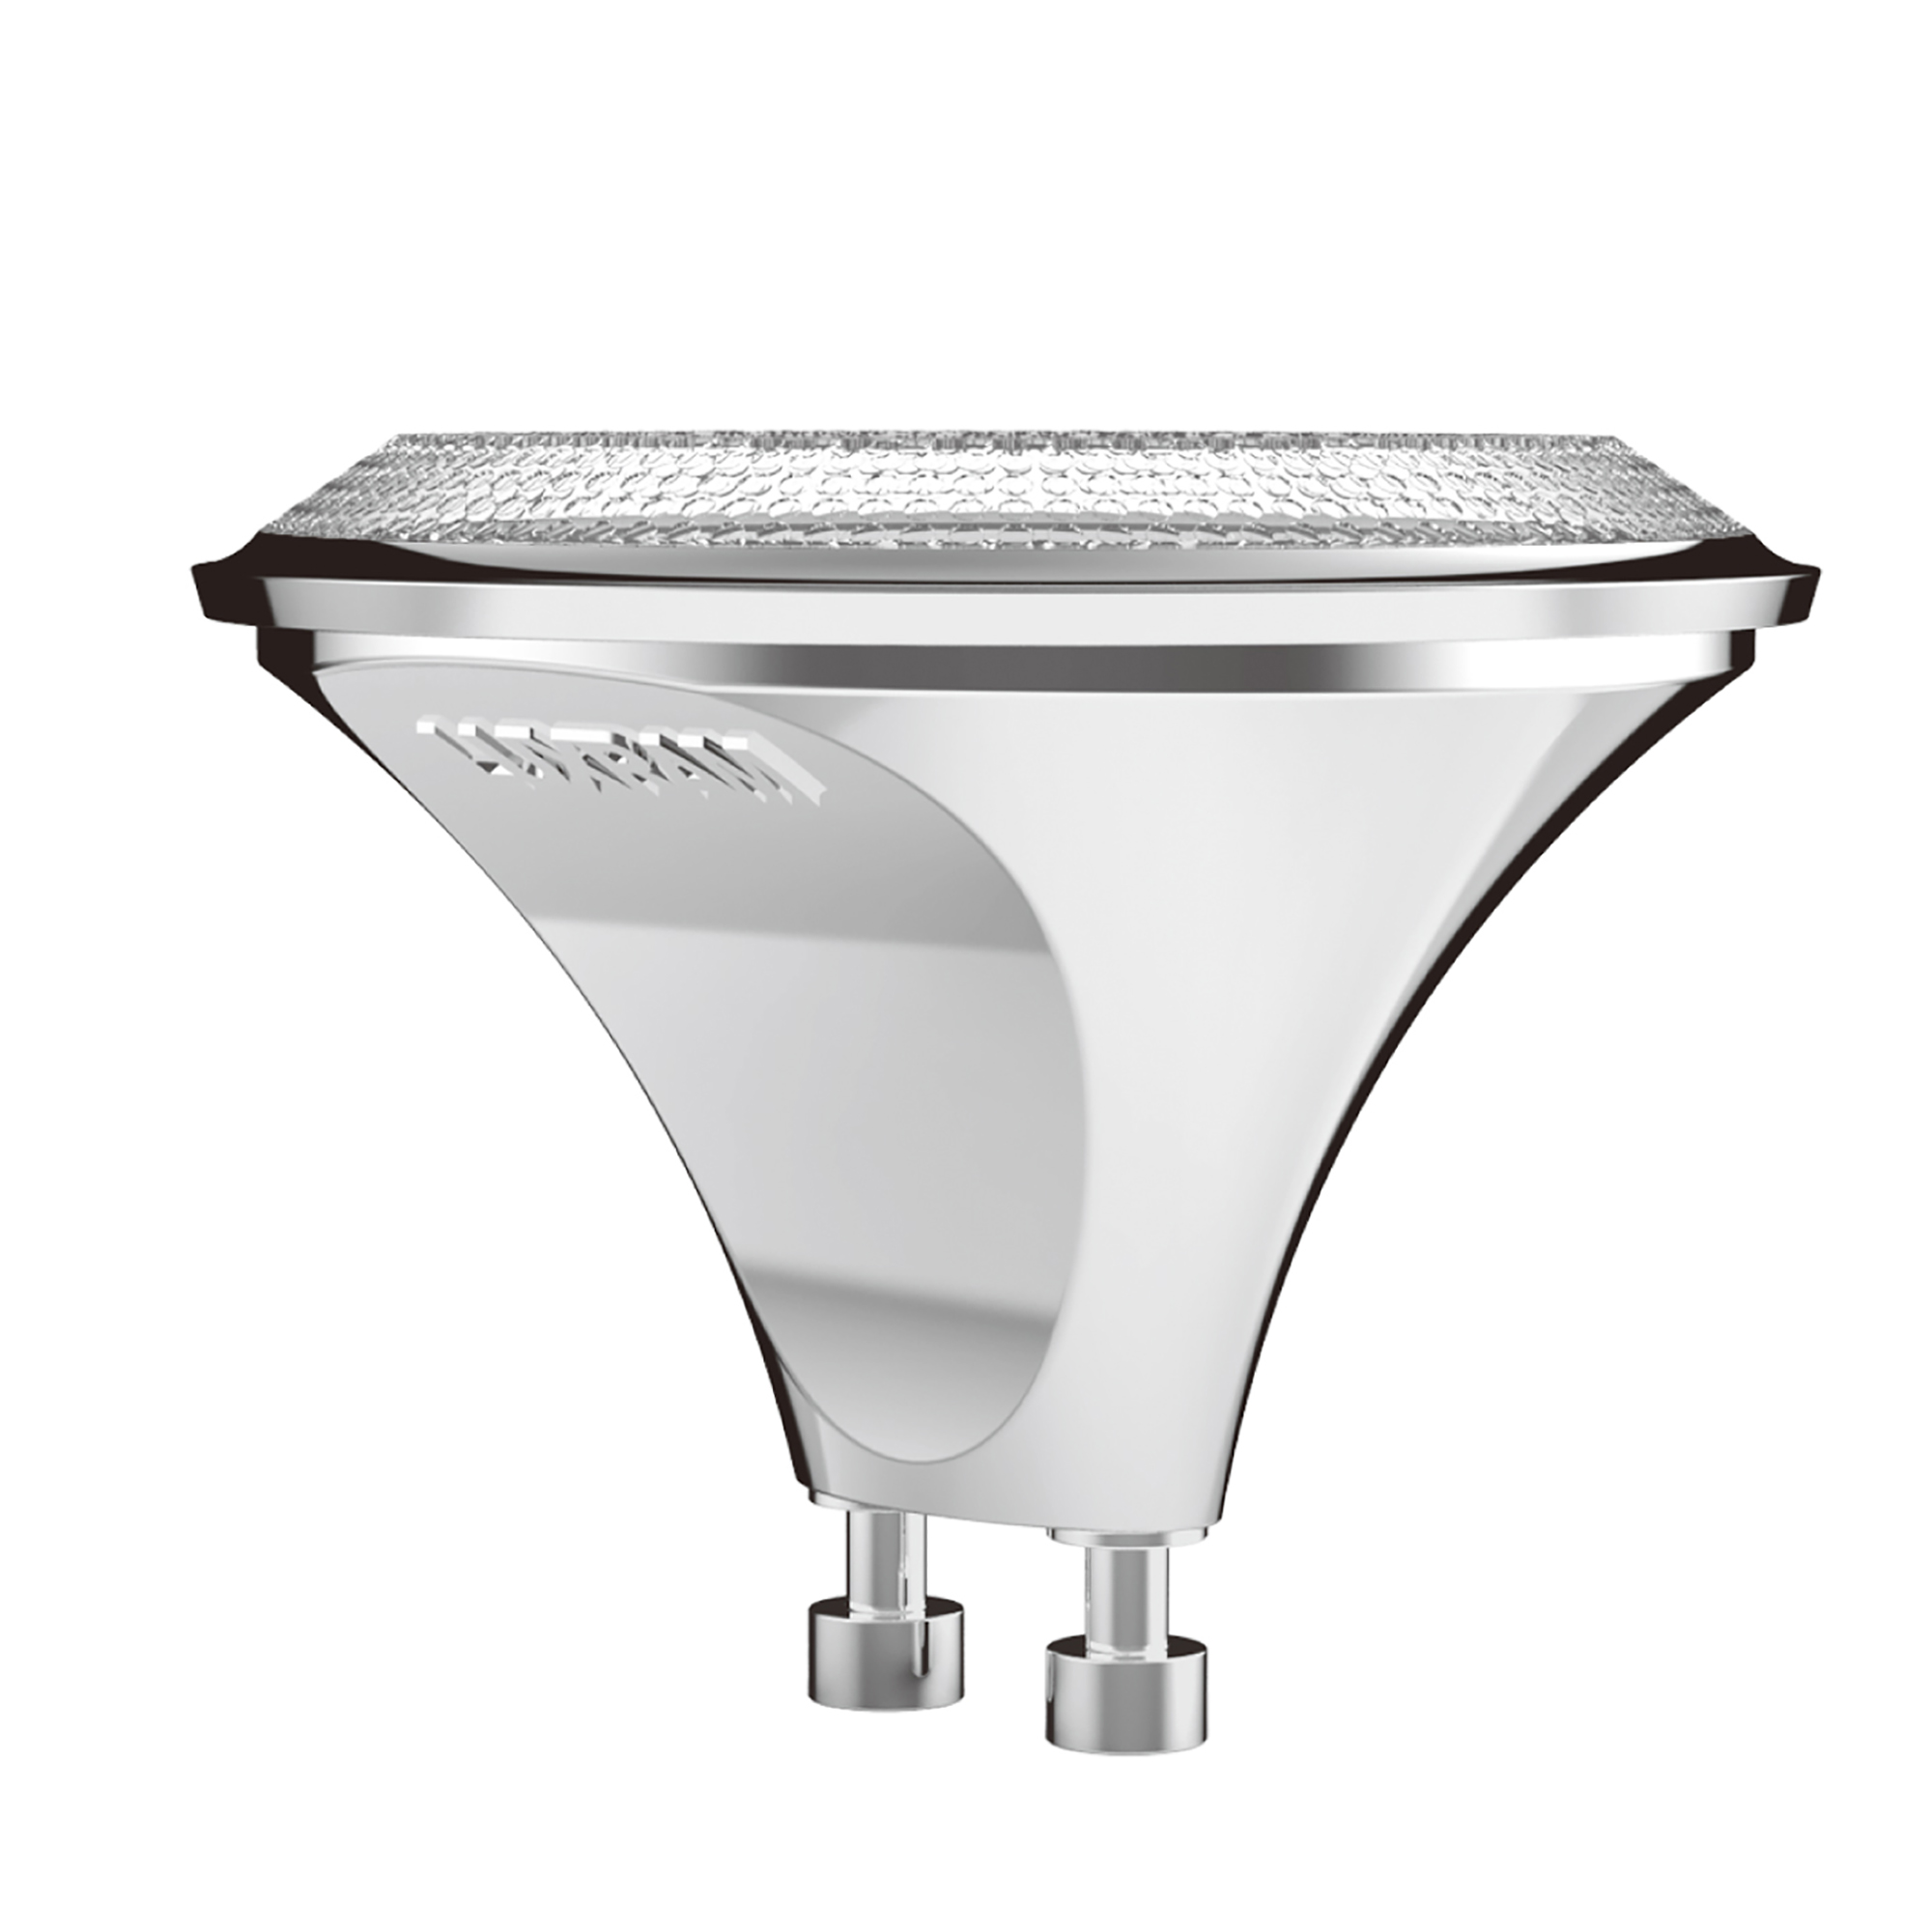 2020 LED Lamps Luxram Spot Lamps